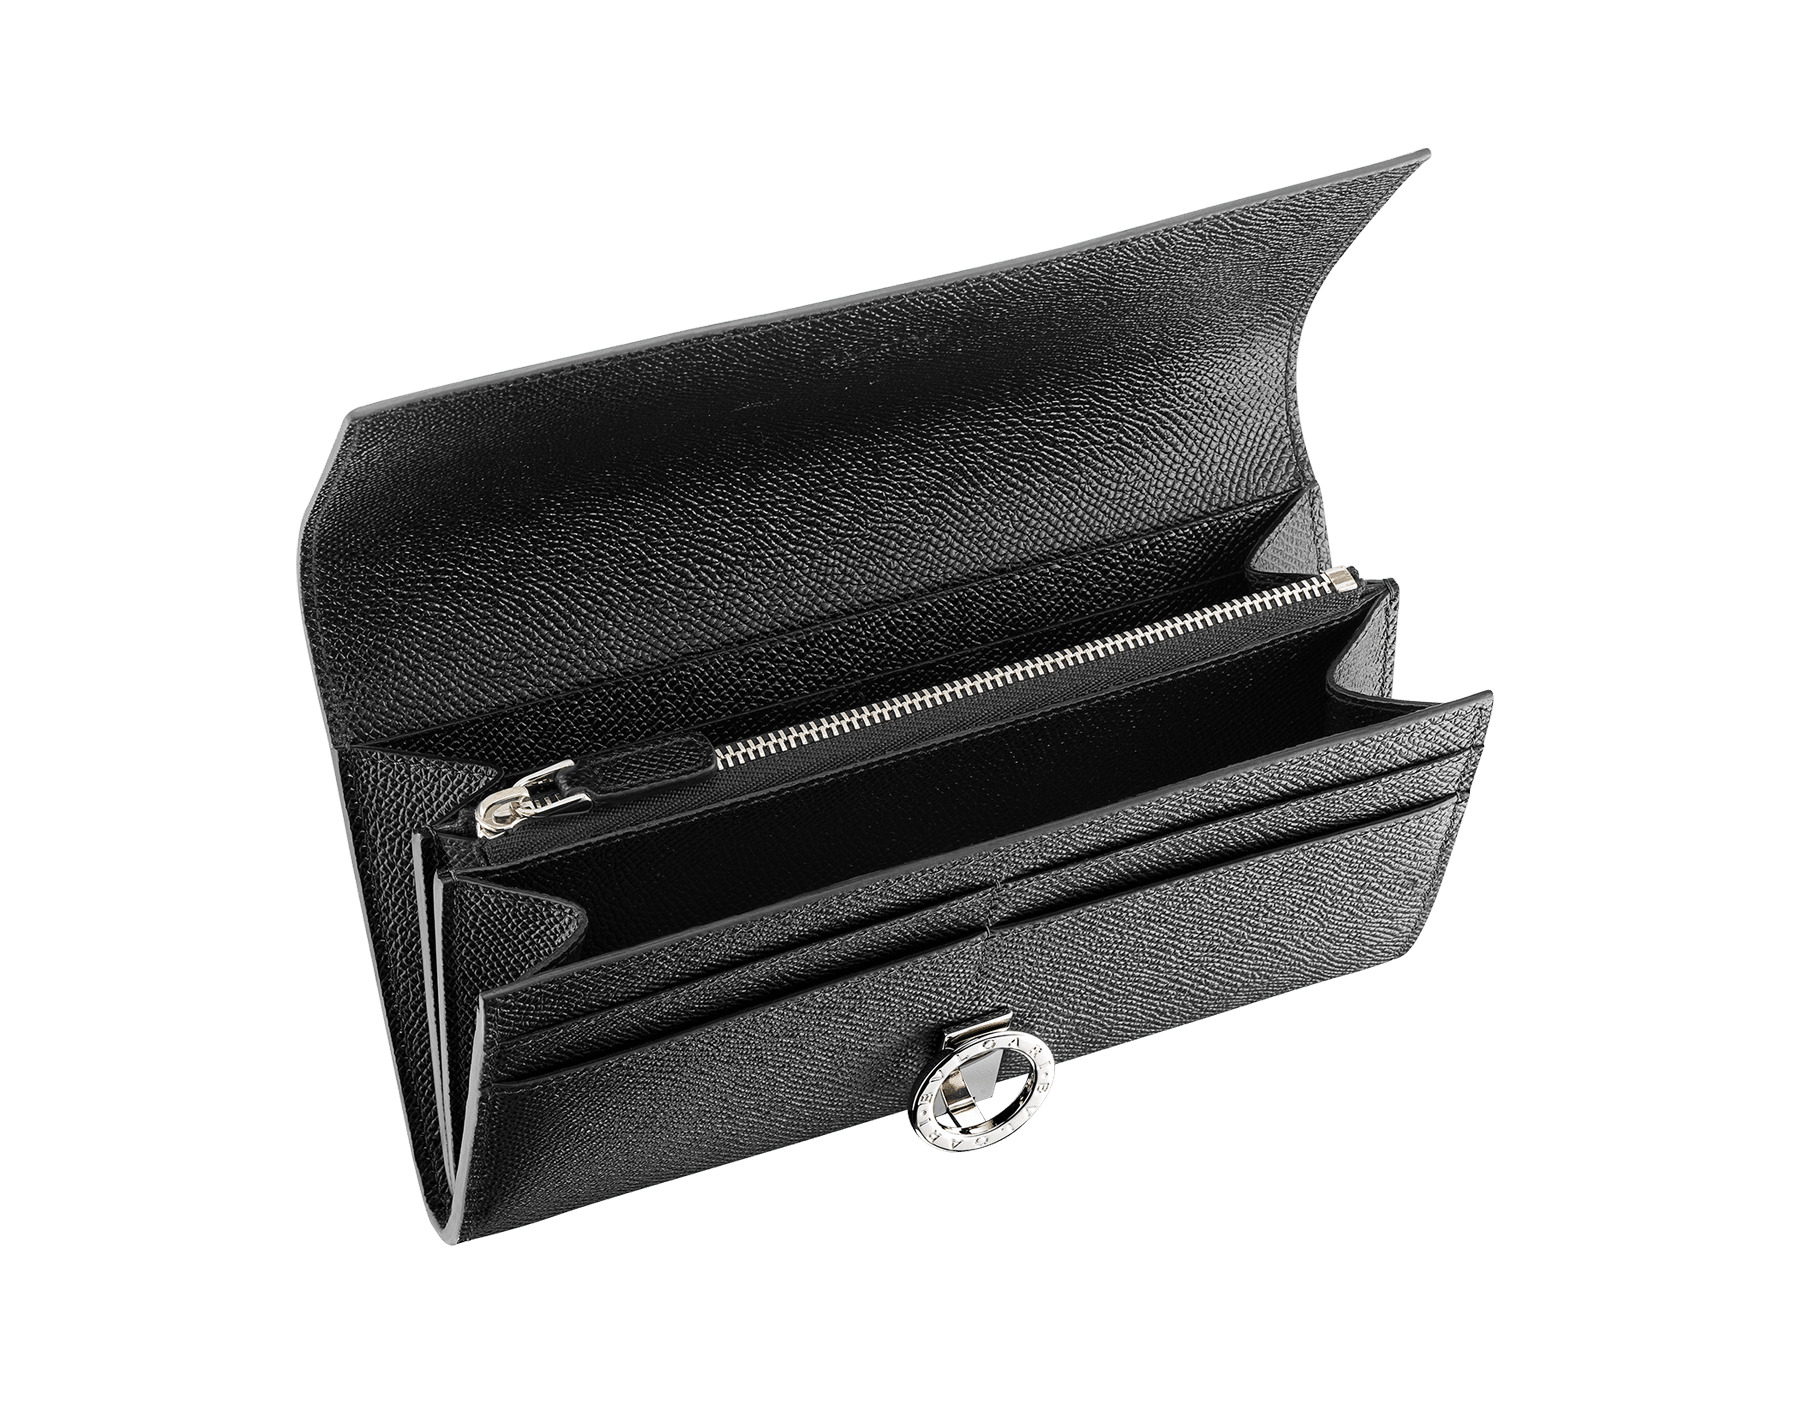 BVLGARI BVLGARI wallet pochette in black grain calf leather. Iconic logo clip closure in palladium plated brass. 289378 image 2